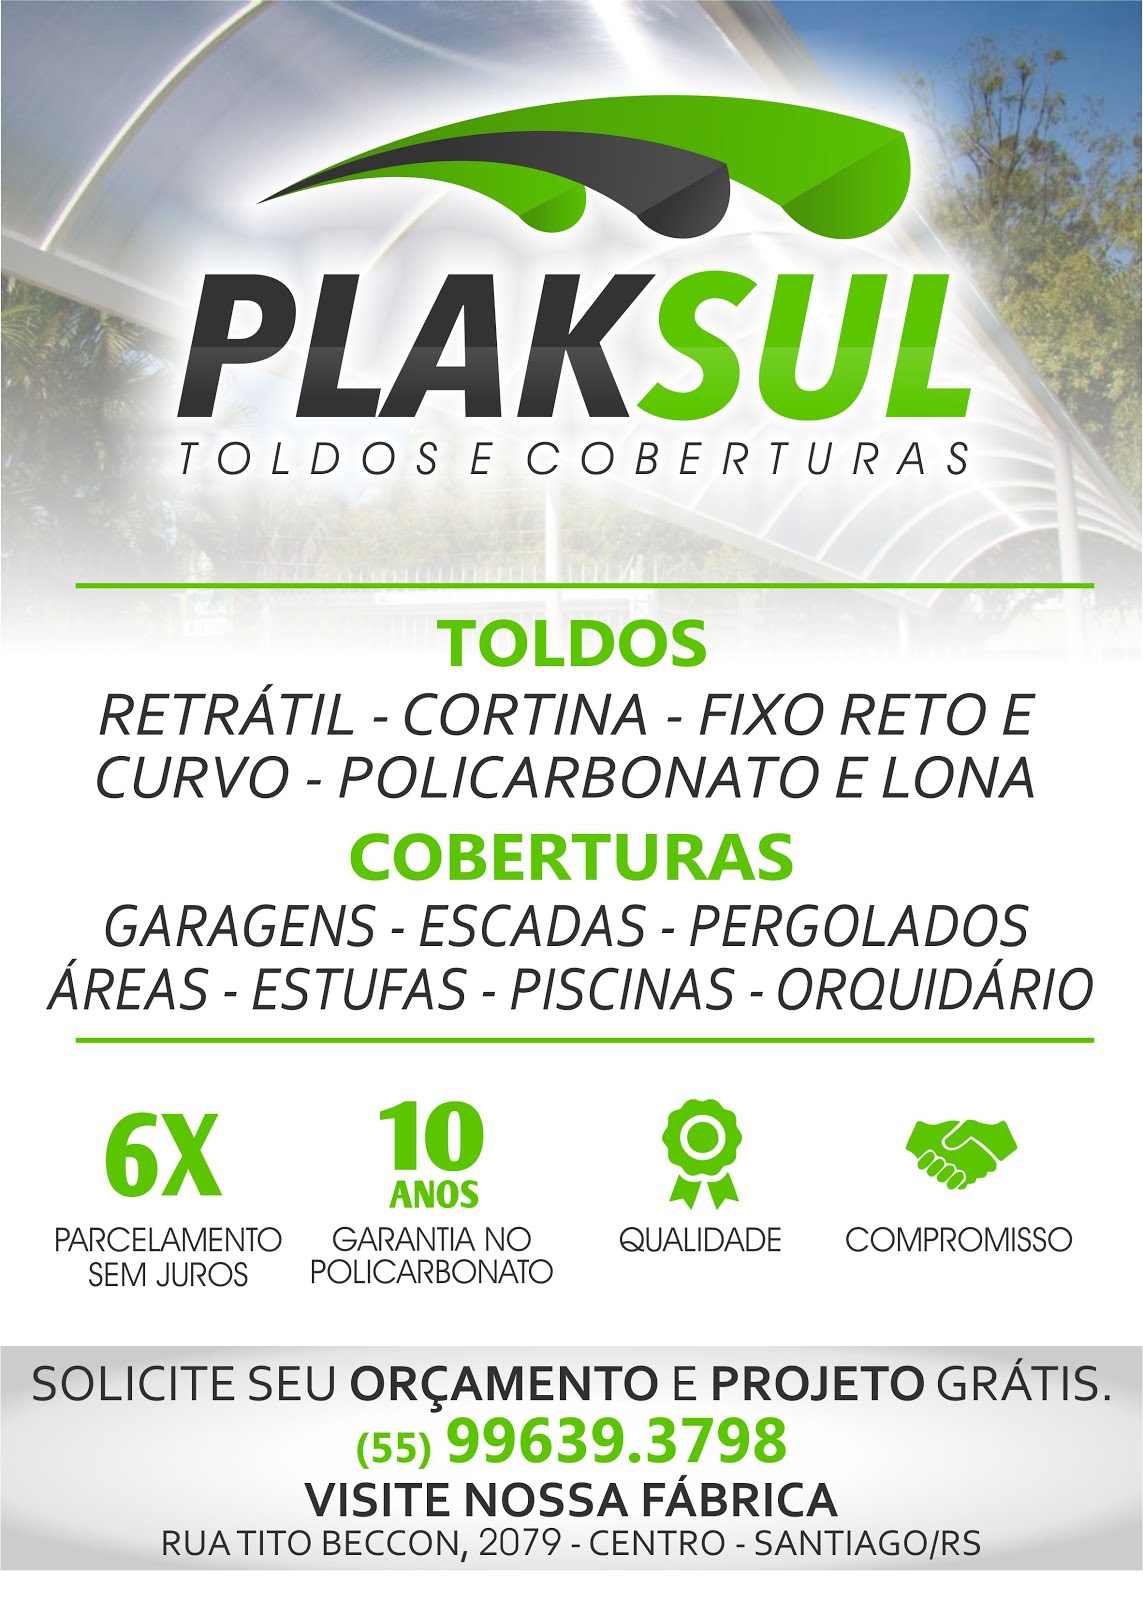 Plaksul Toldos e Coberturas